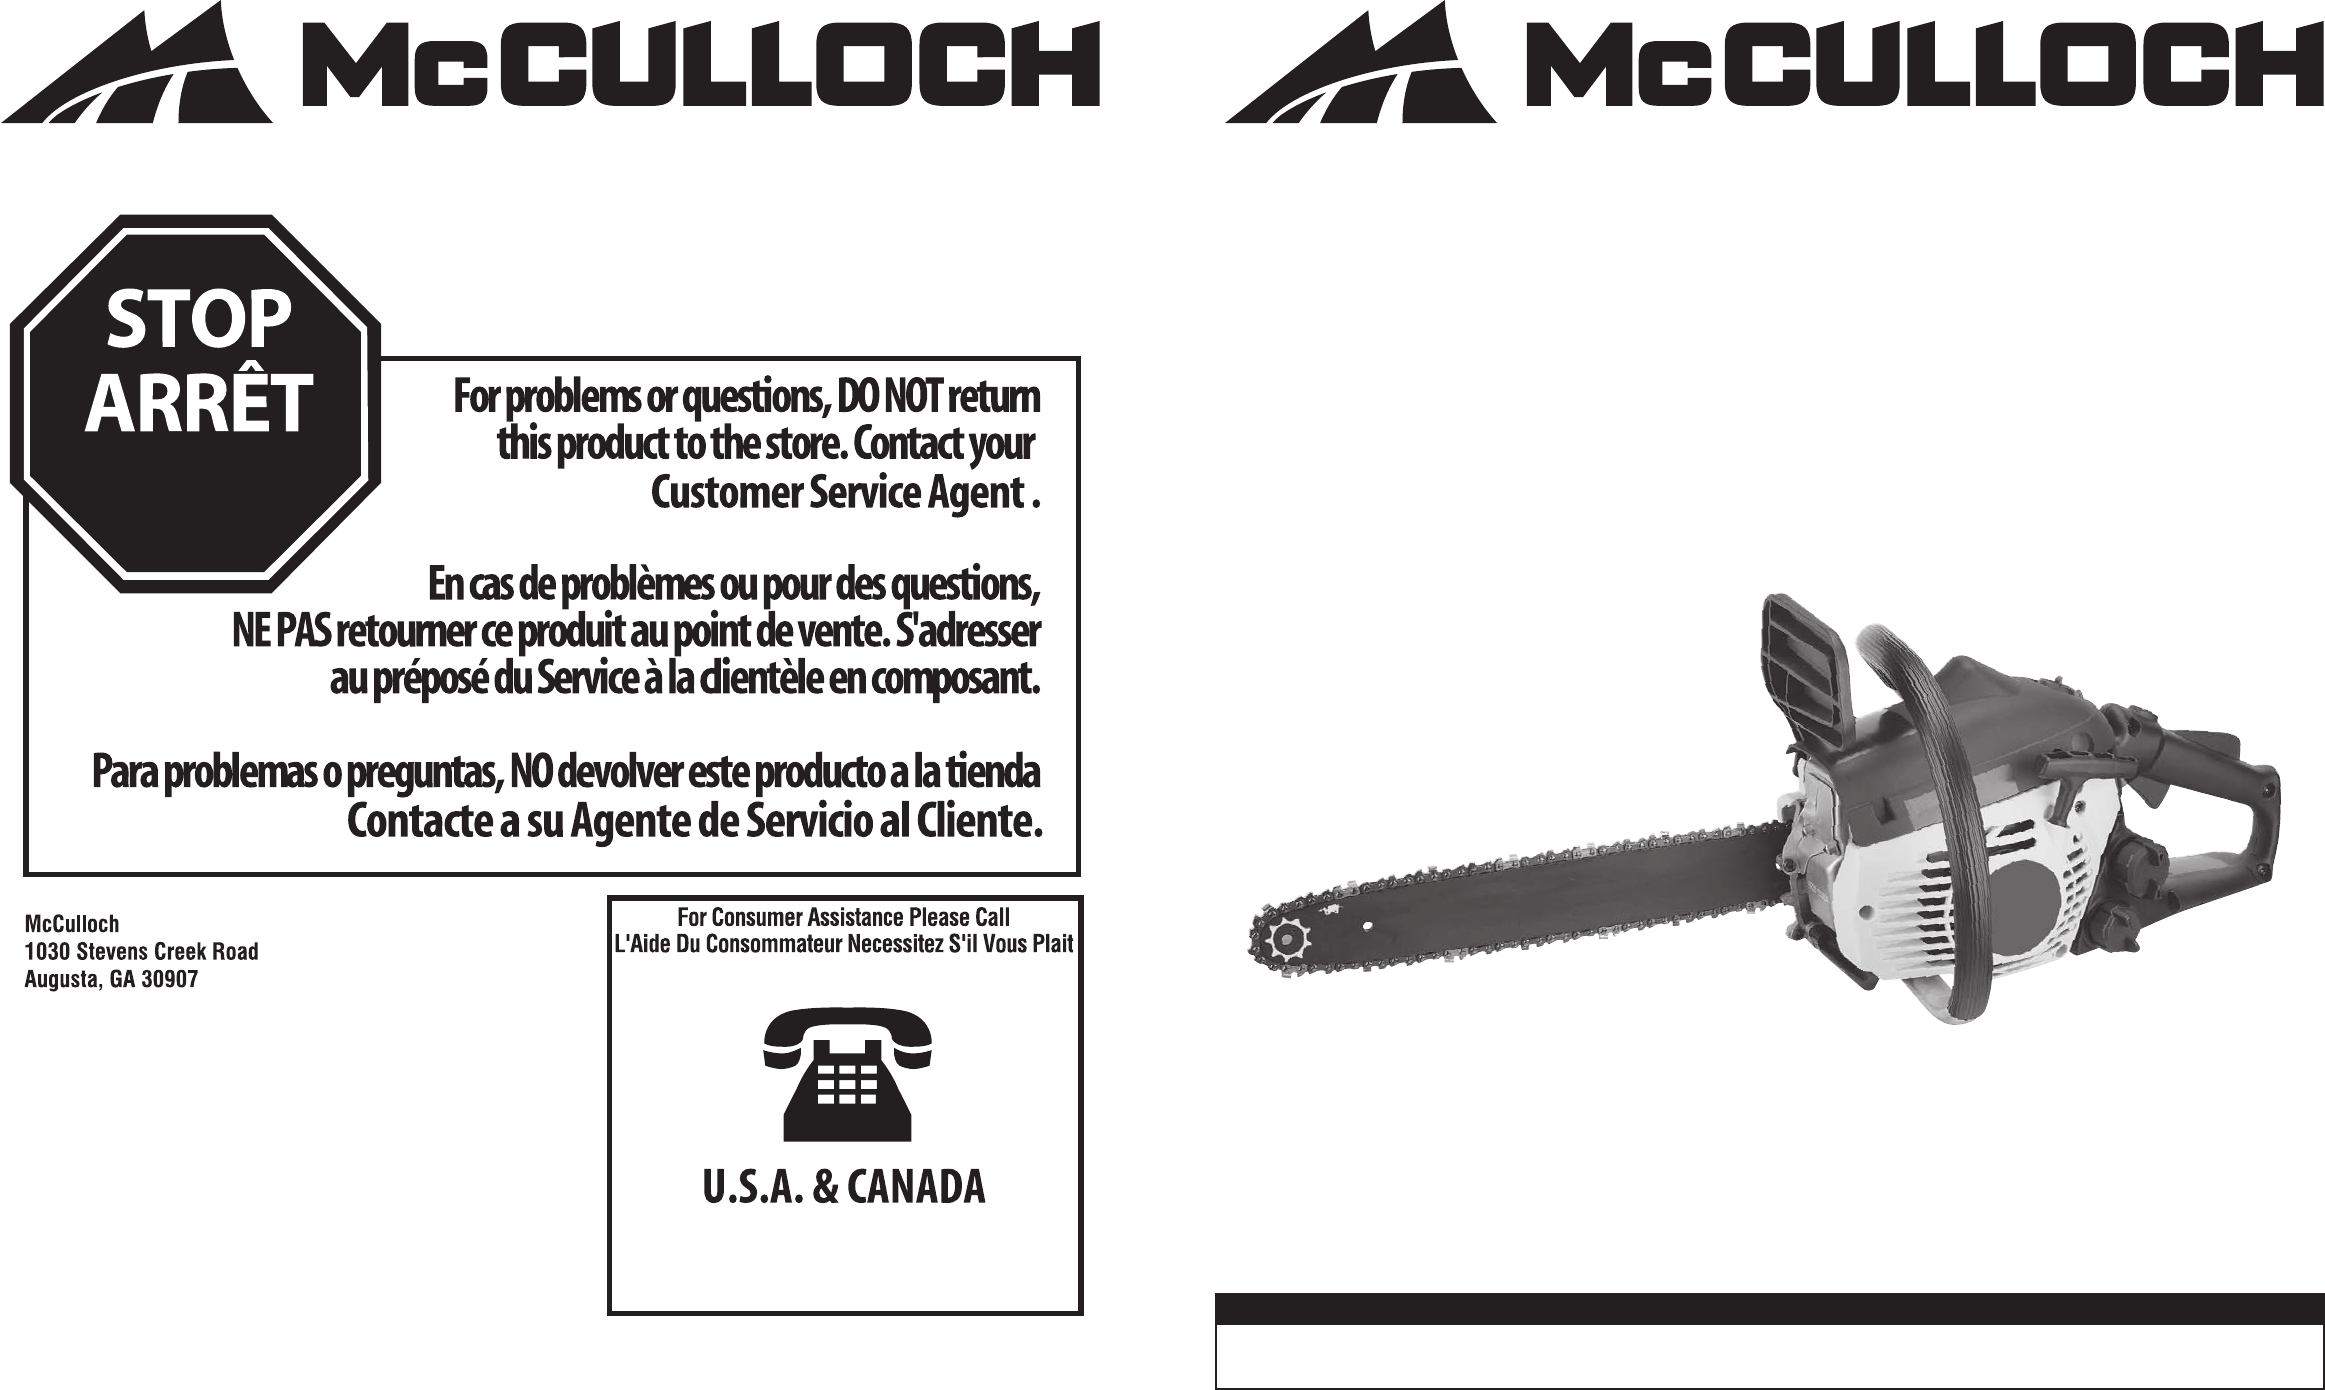 Mcculloch chainsaw mcc1635a user guide manualsonline greentooth Images